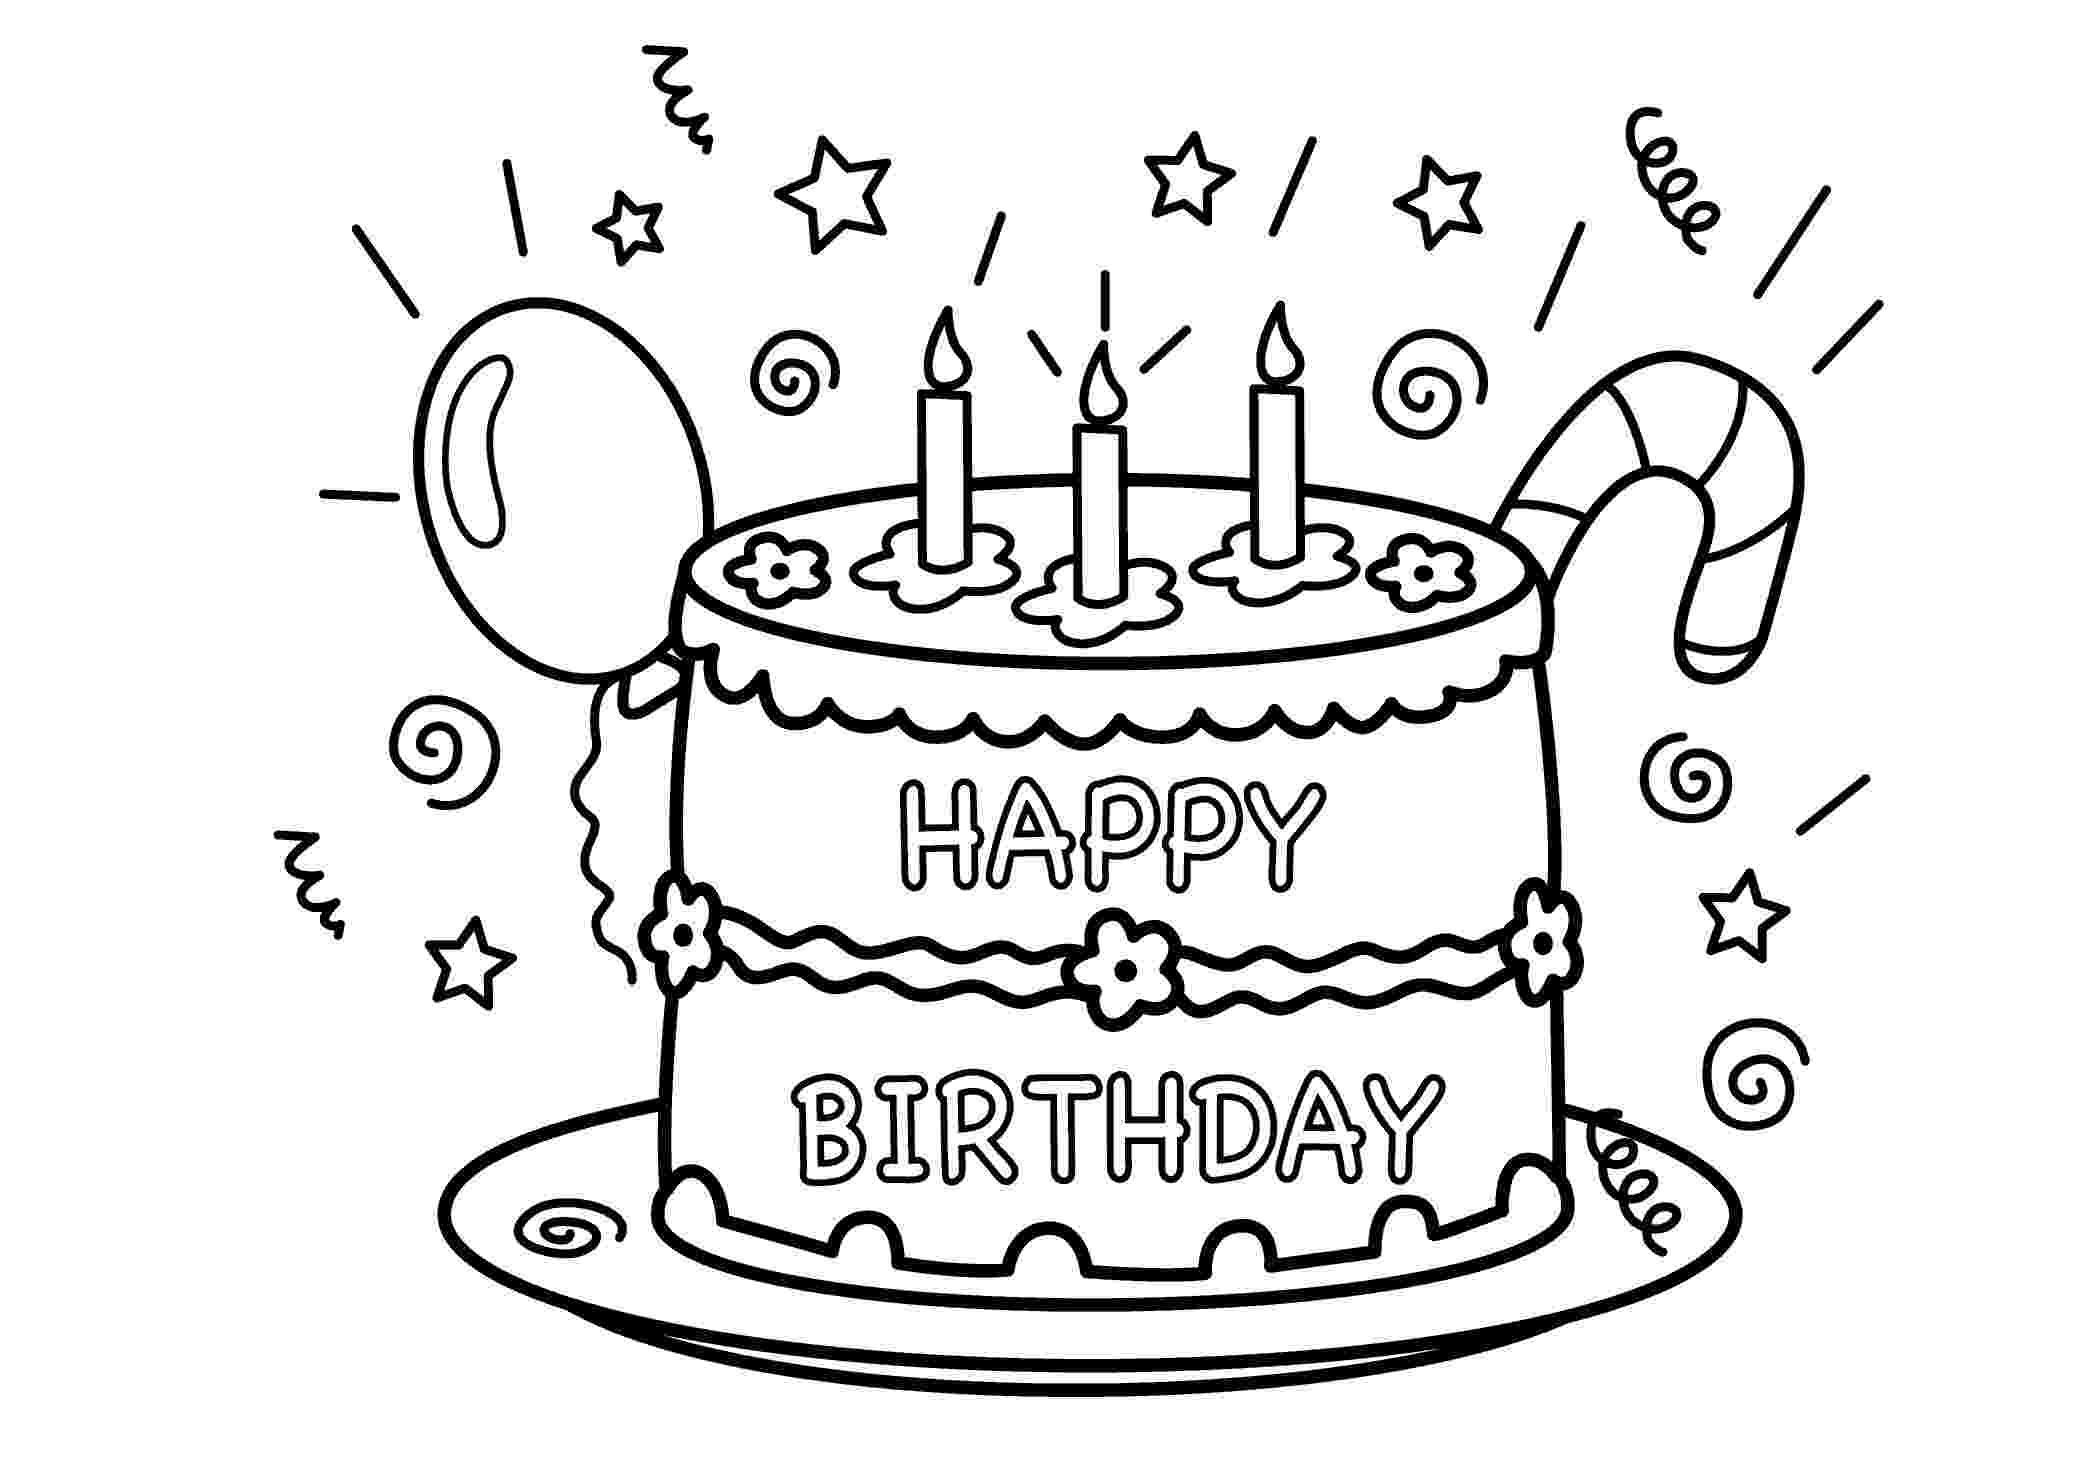 coloring page of a birthday cake free printable birthday cake coloring pages for kids of page coloring a birthday cake